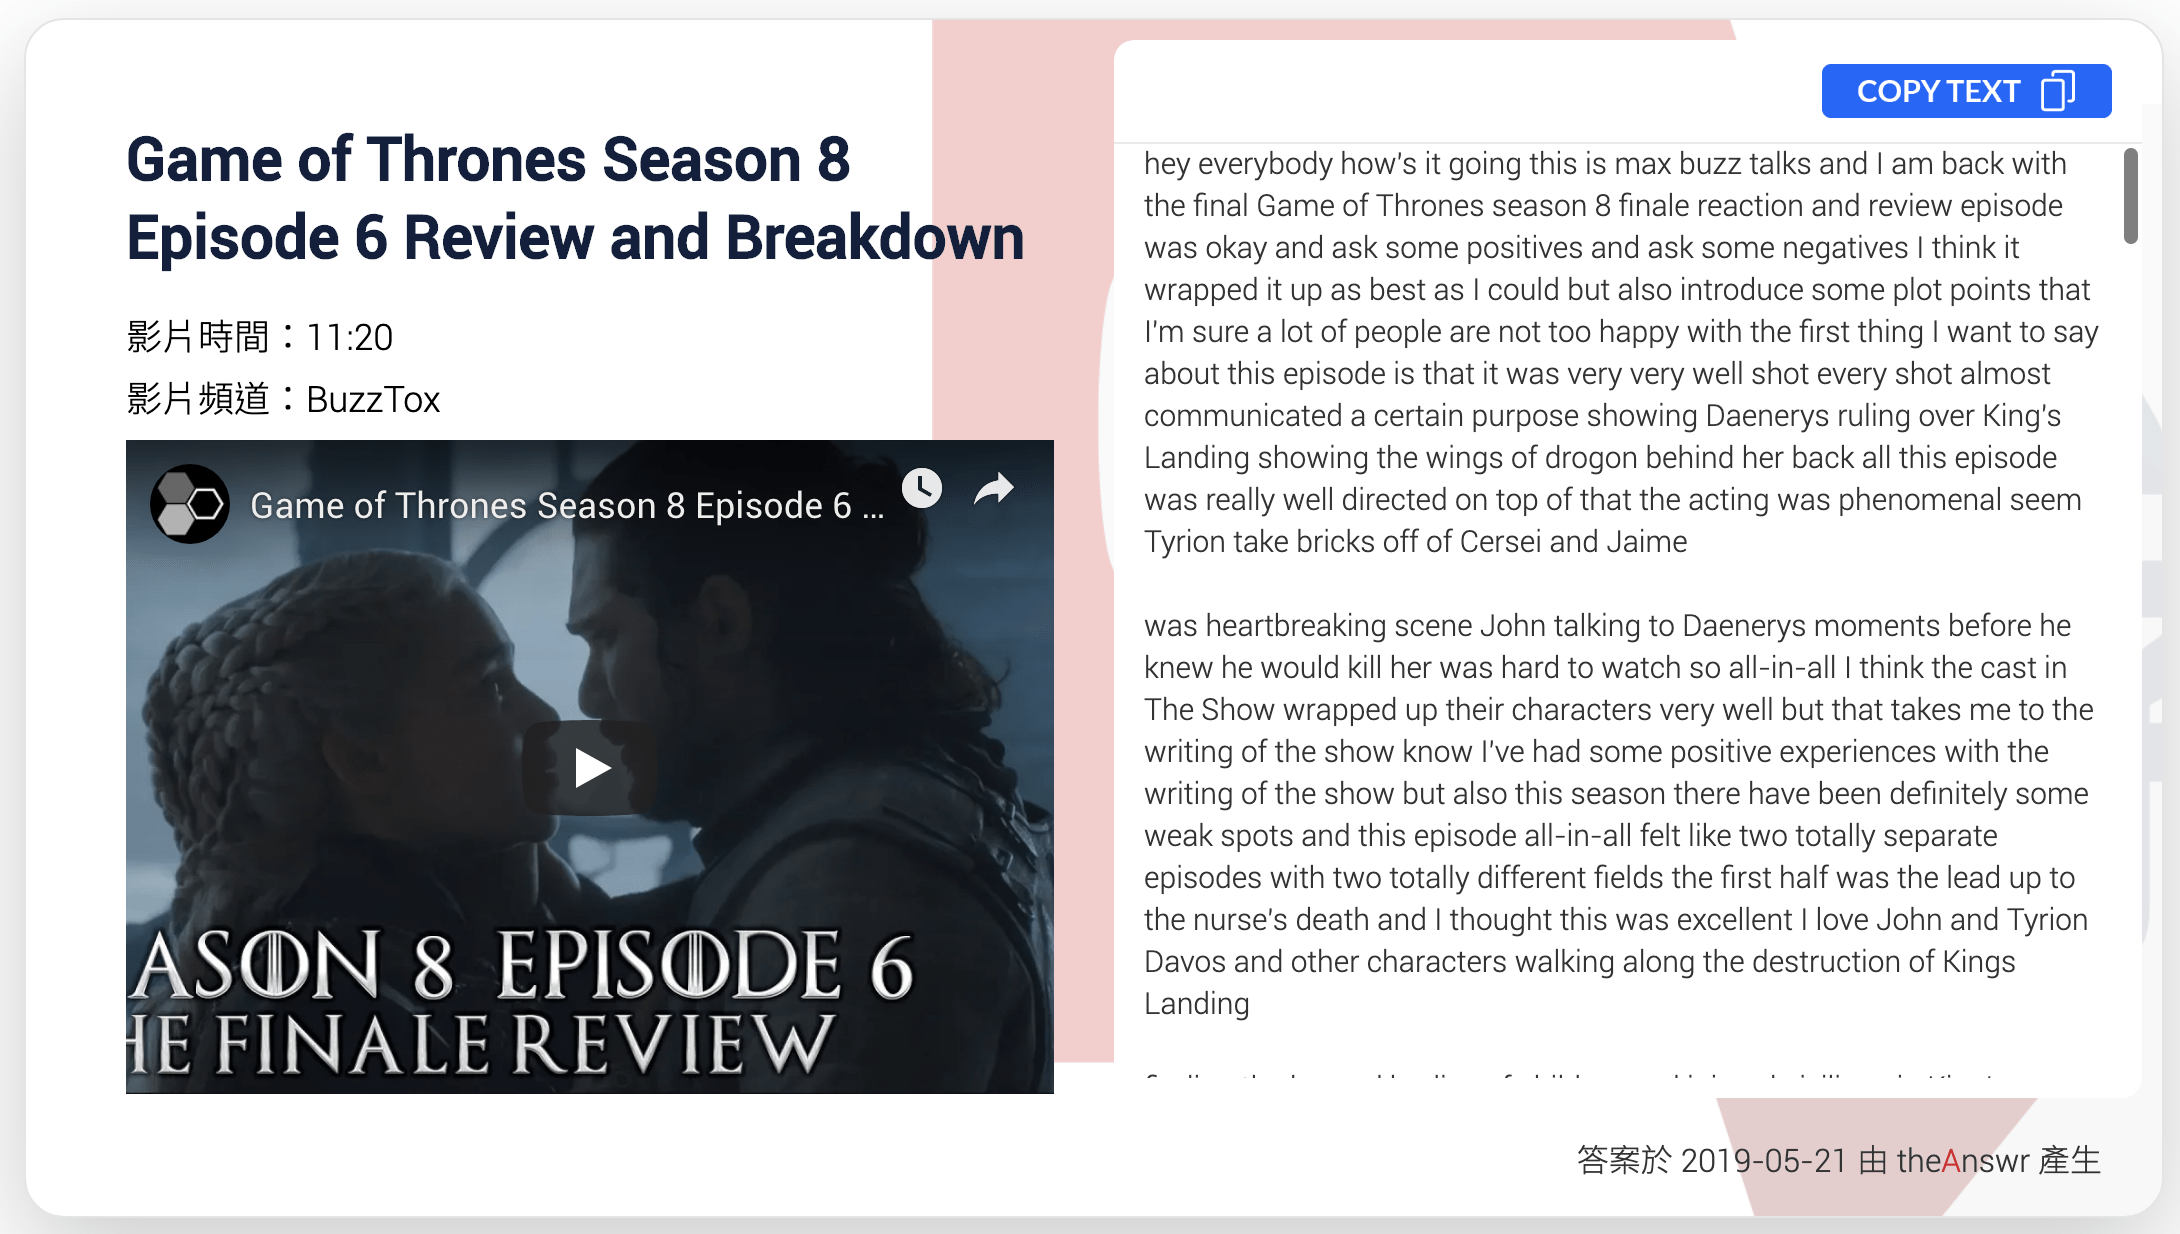 1. BuzzTox - Game of Thrones Season 8 Episode 6 Review and Breakdown Transcript